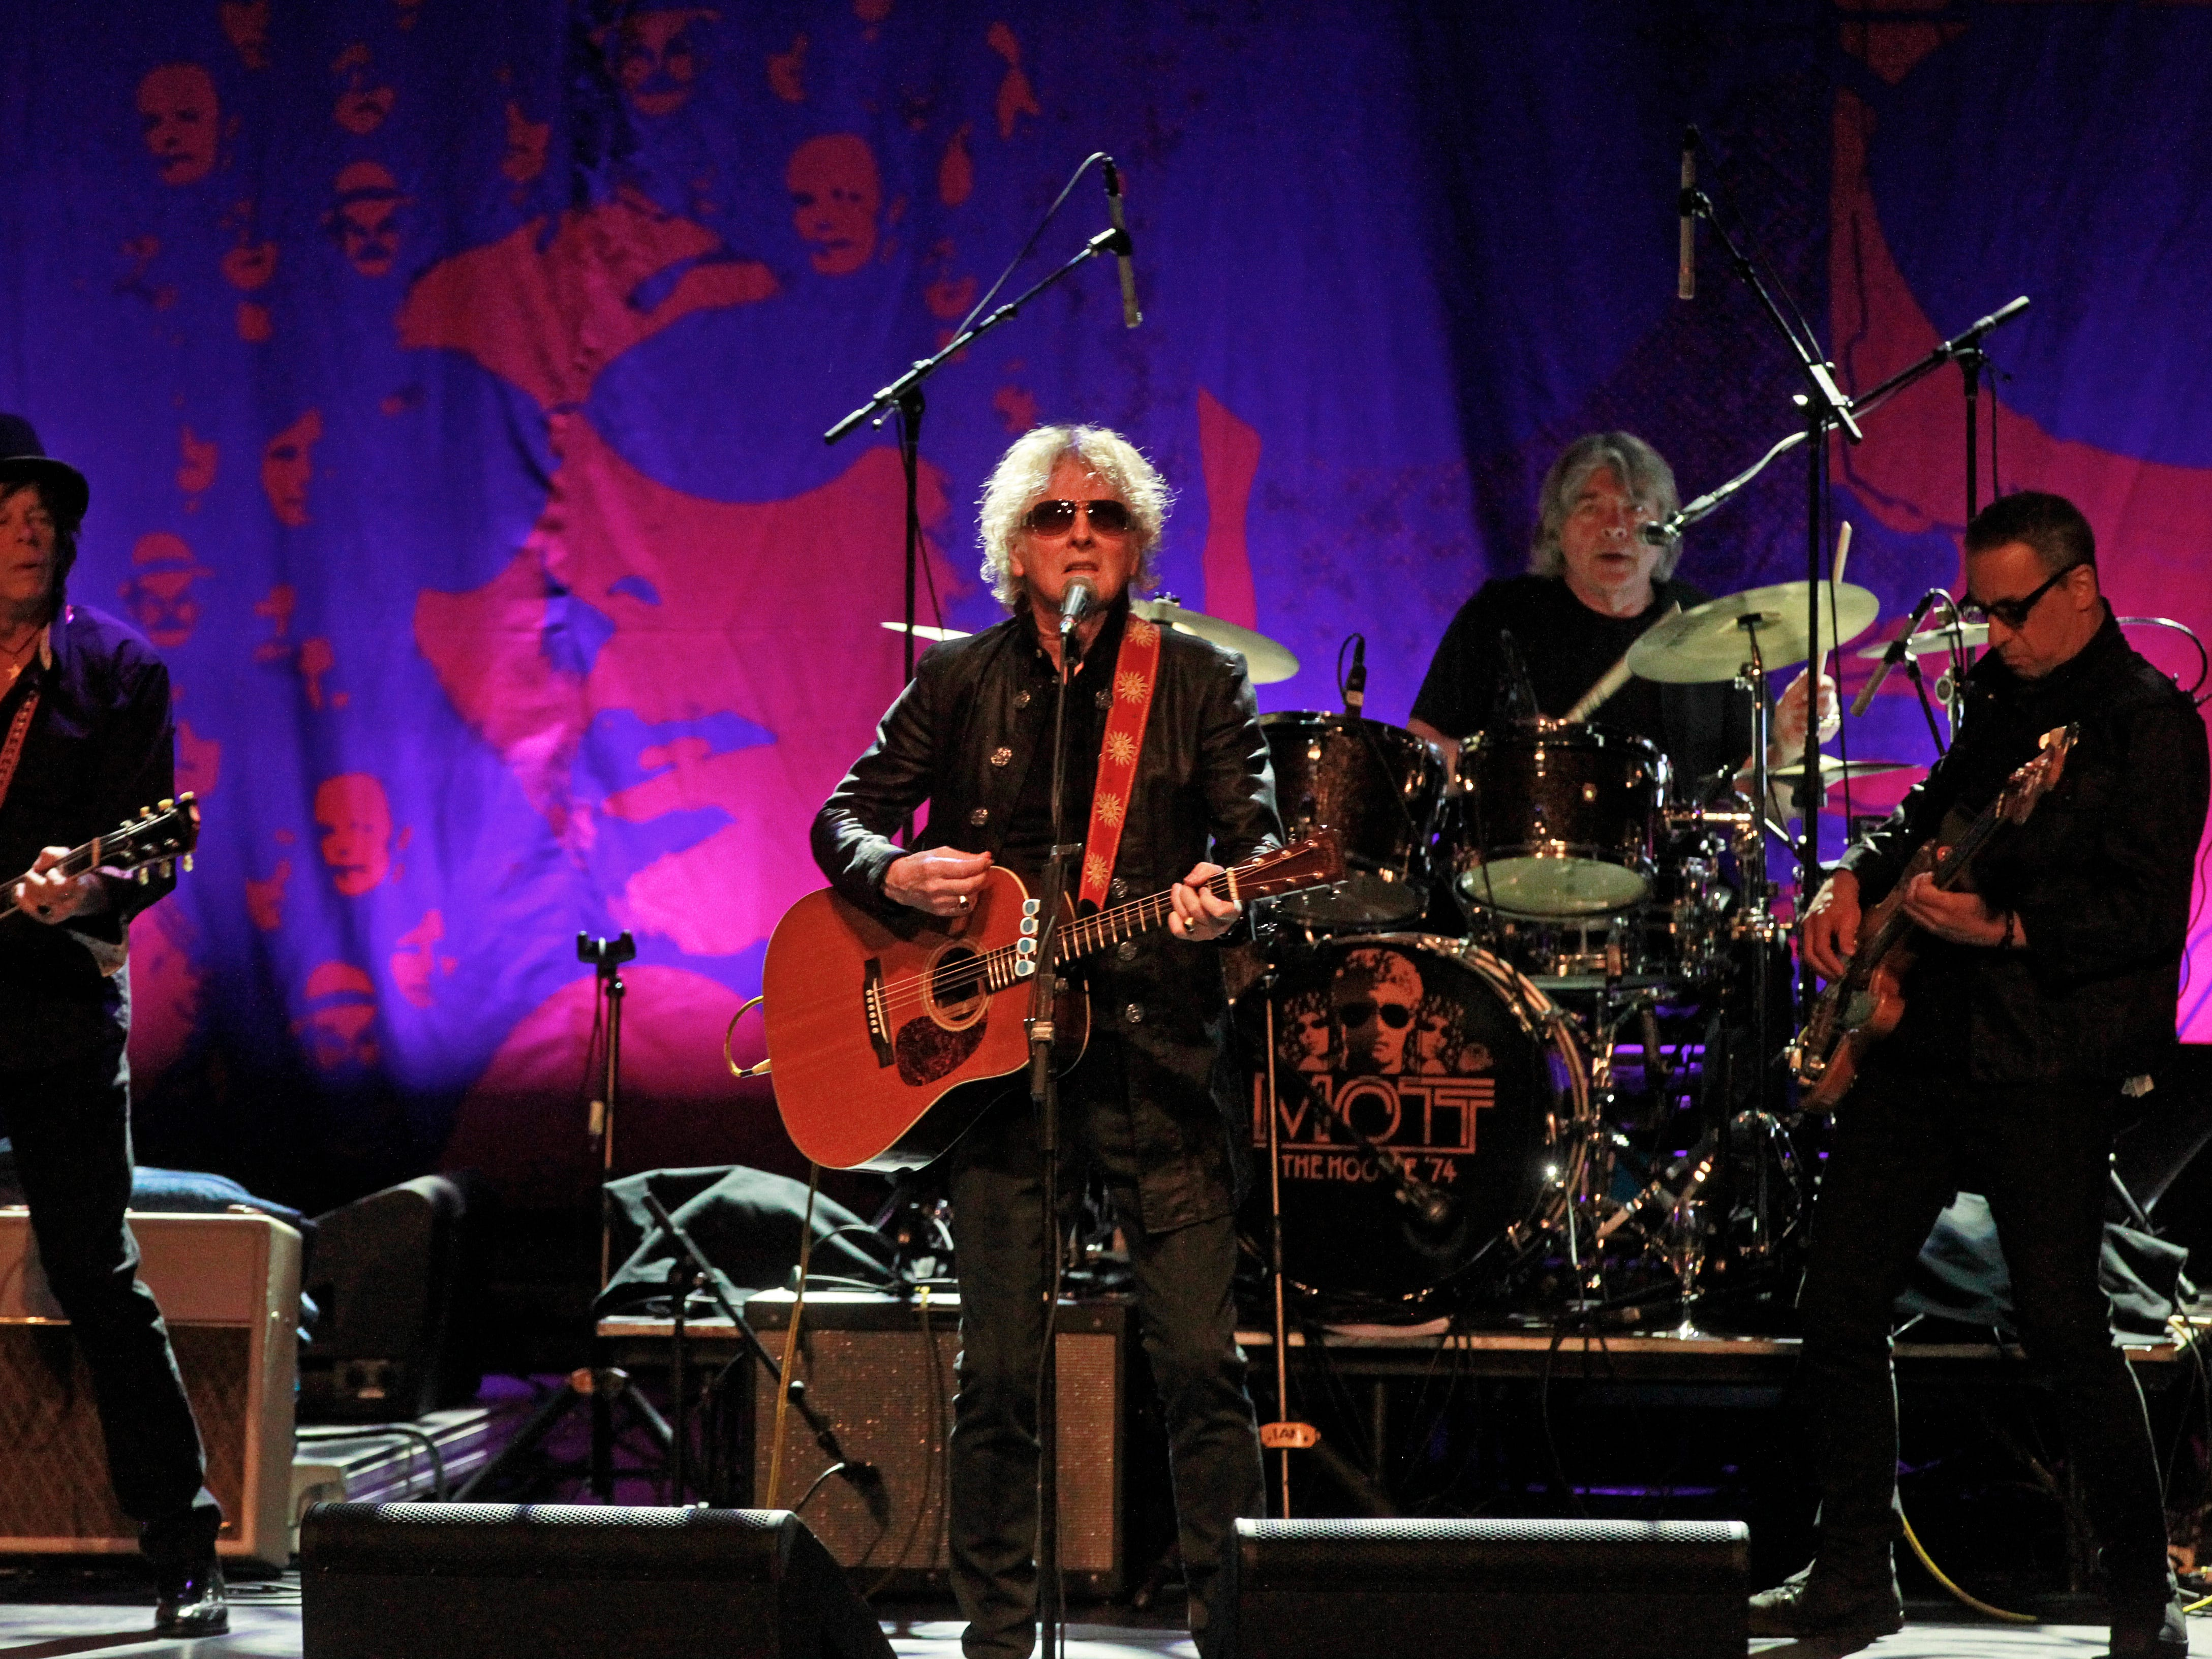 Ian Hunter, center, from the Mott The Hoople kicks off the band's first U.S. tour in 45 years at the Miller High Life Theatre in Milwaukee, Wi., Monday, April 1, 2019.